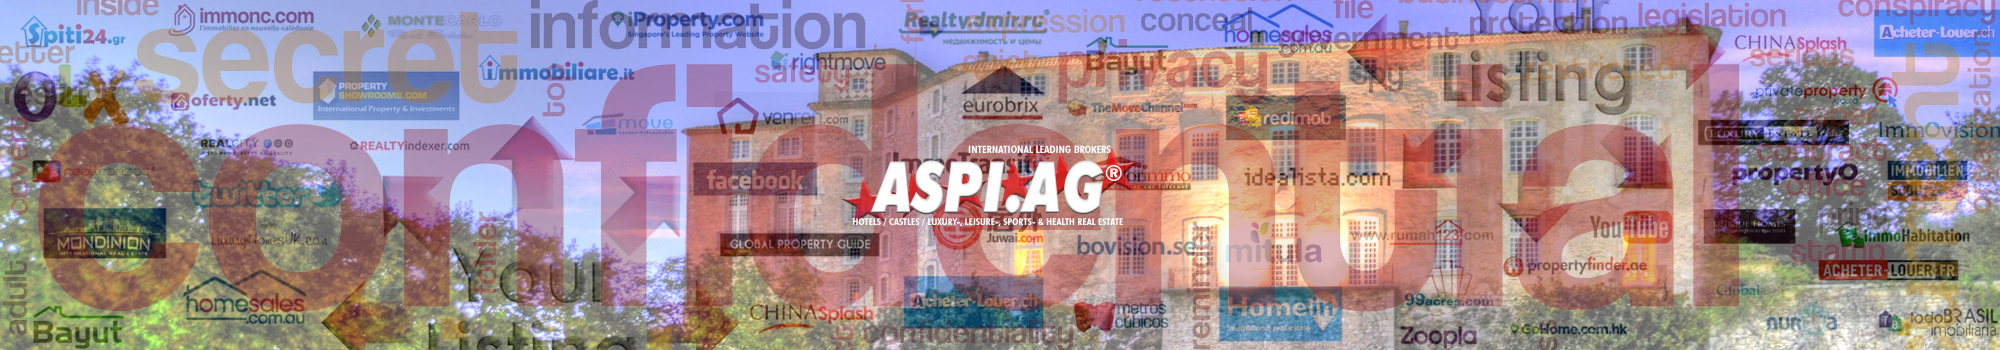 ASPI AG Leading international expert broker for castles and historic properties